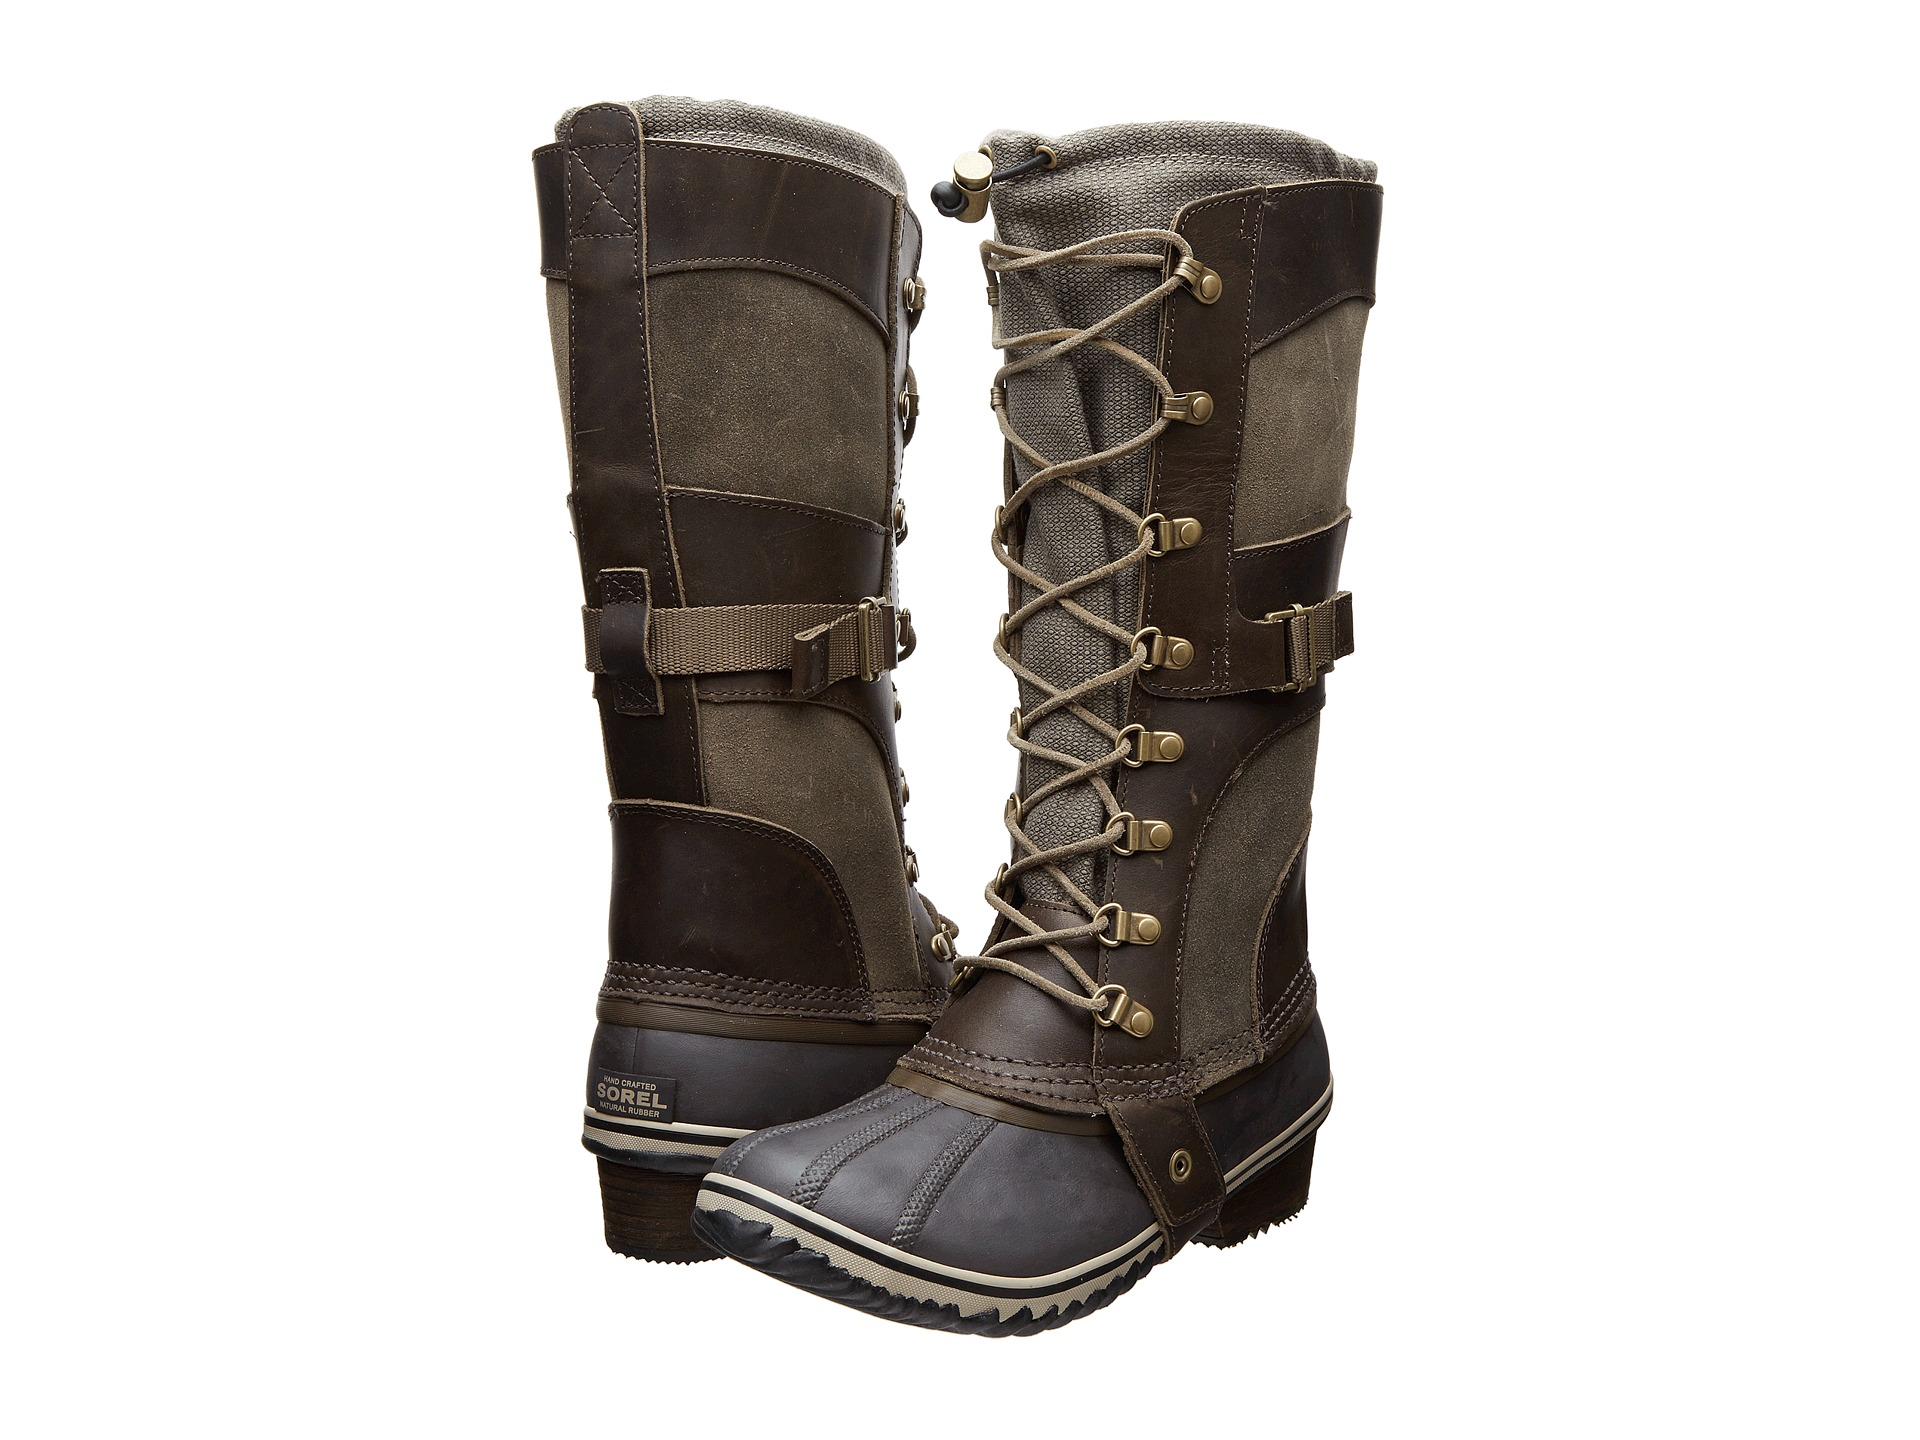 Beautiful And Conquest Carly Boots Photo Gallery Sorel Womens Conquest Carly